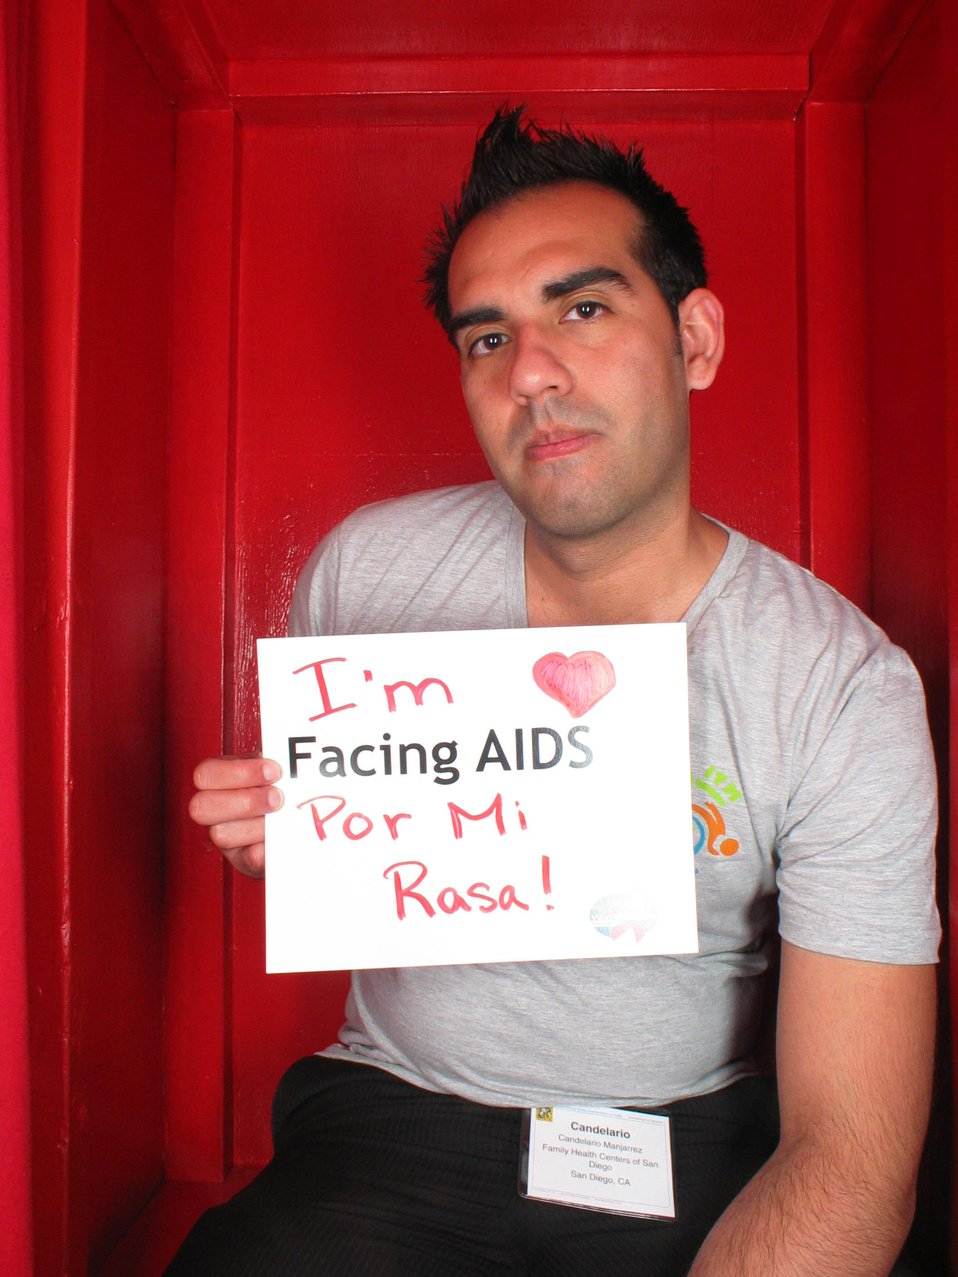 I'm Facing AIDS por mi Rasa!